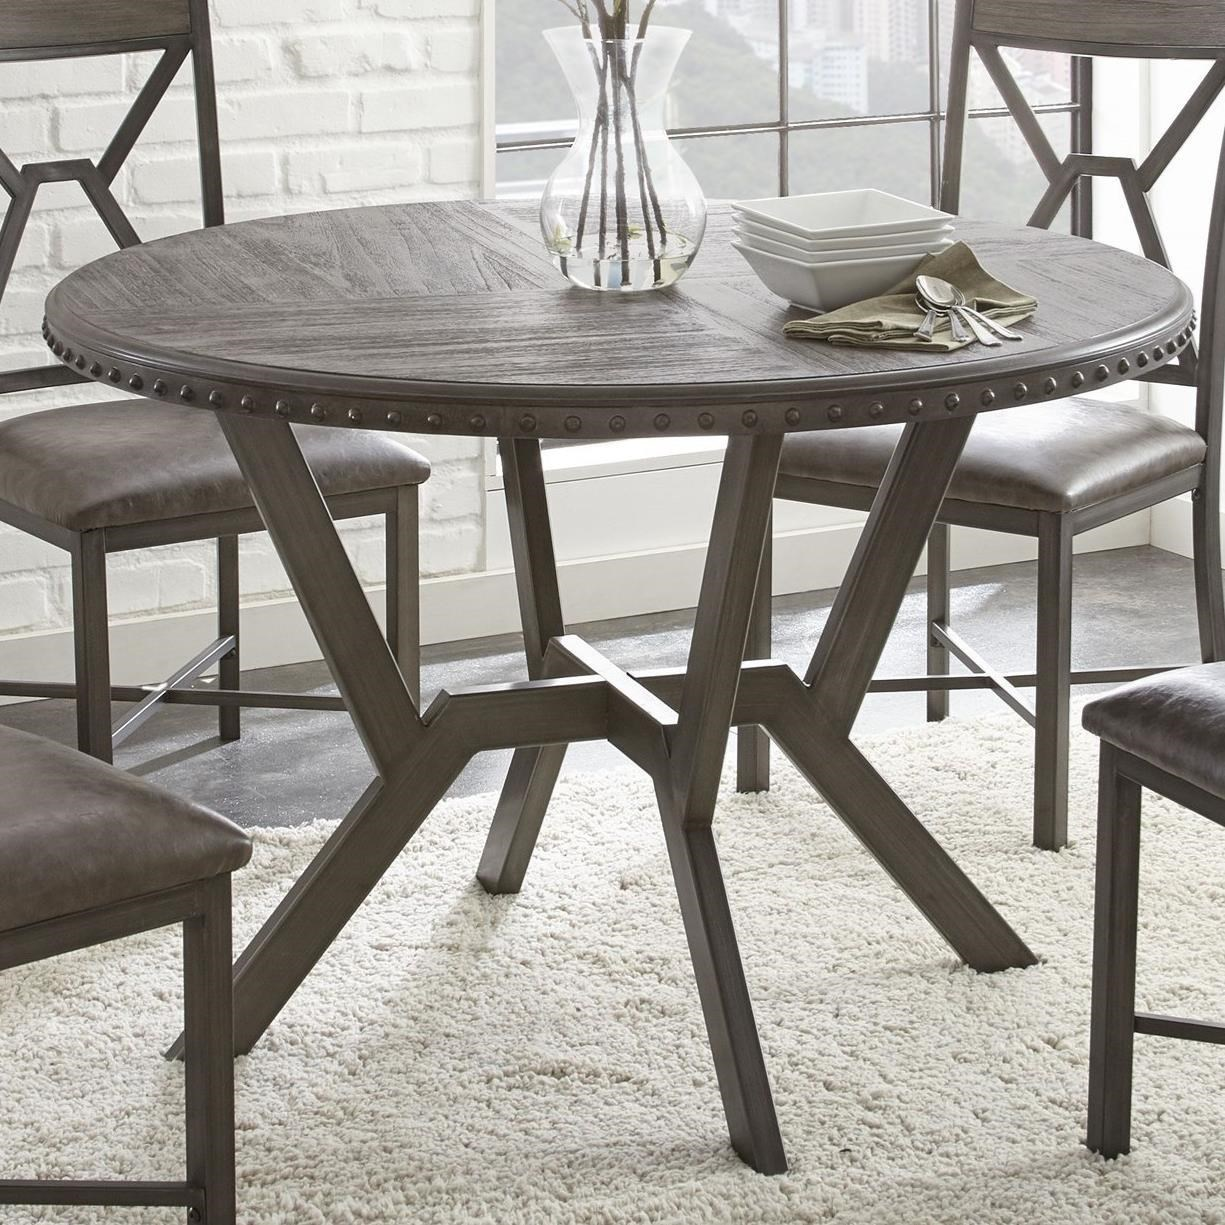 Alamo Round Dining Table by Steve Silver at Northeast Factory Direct